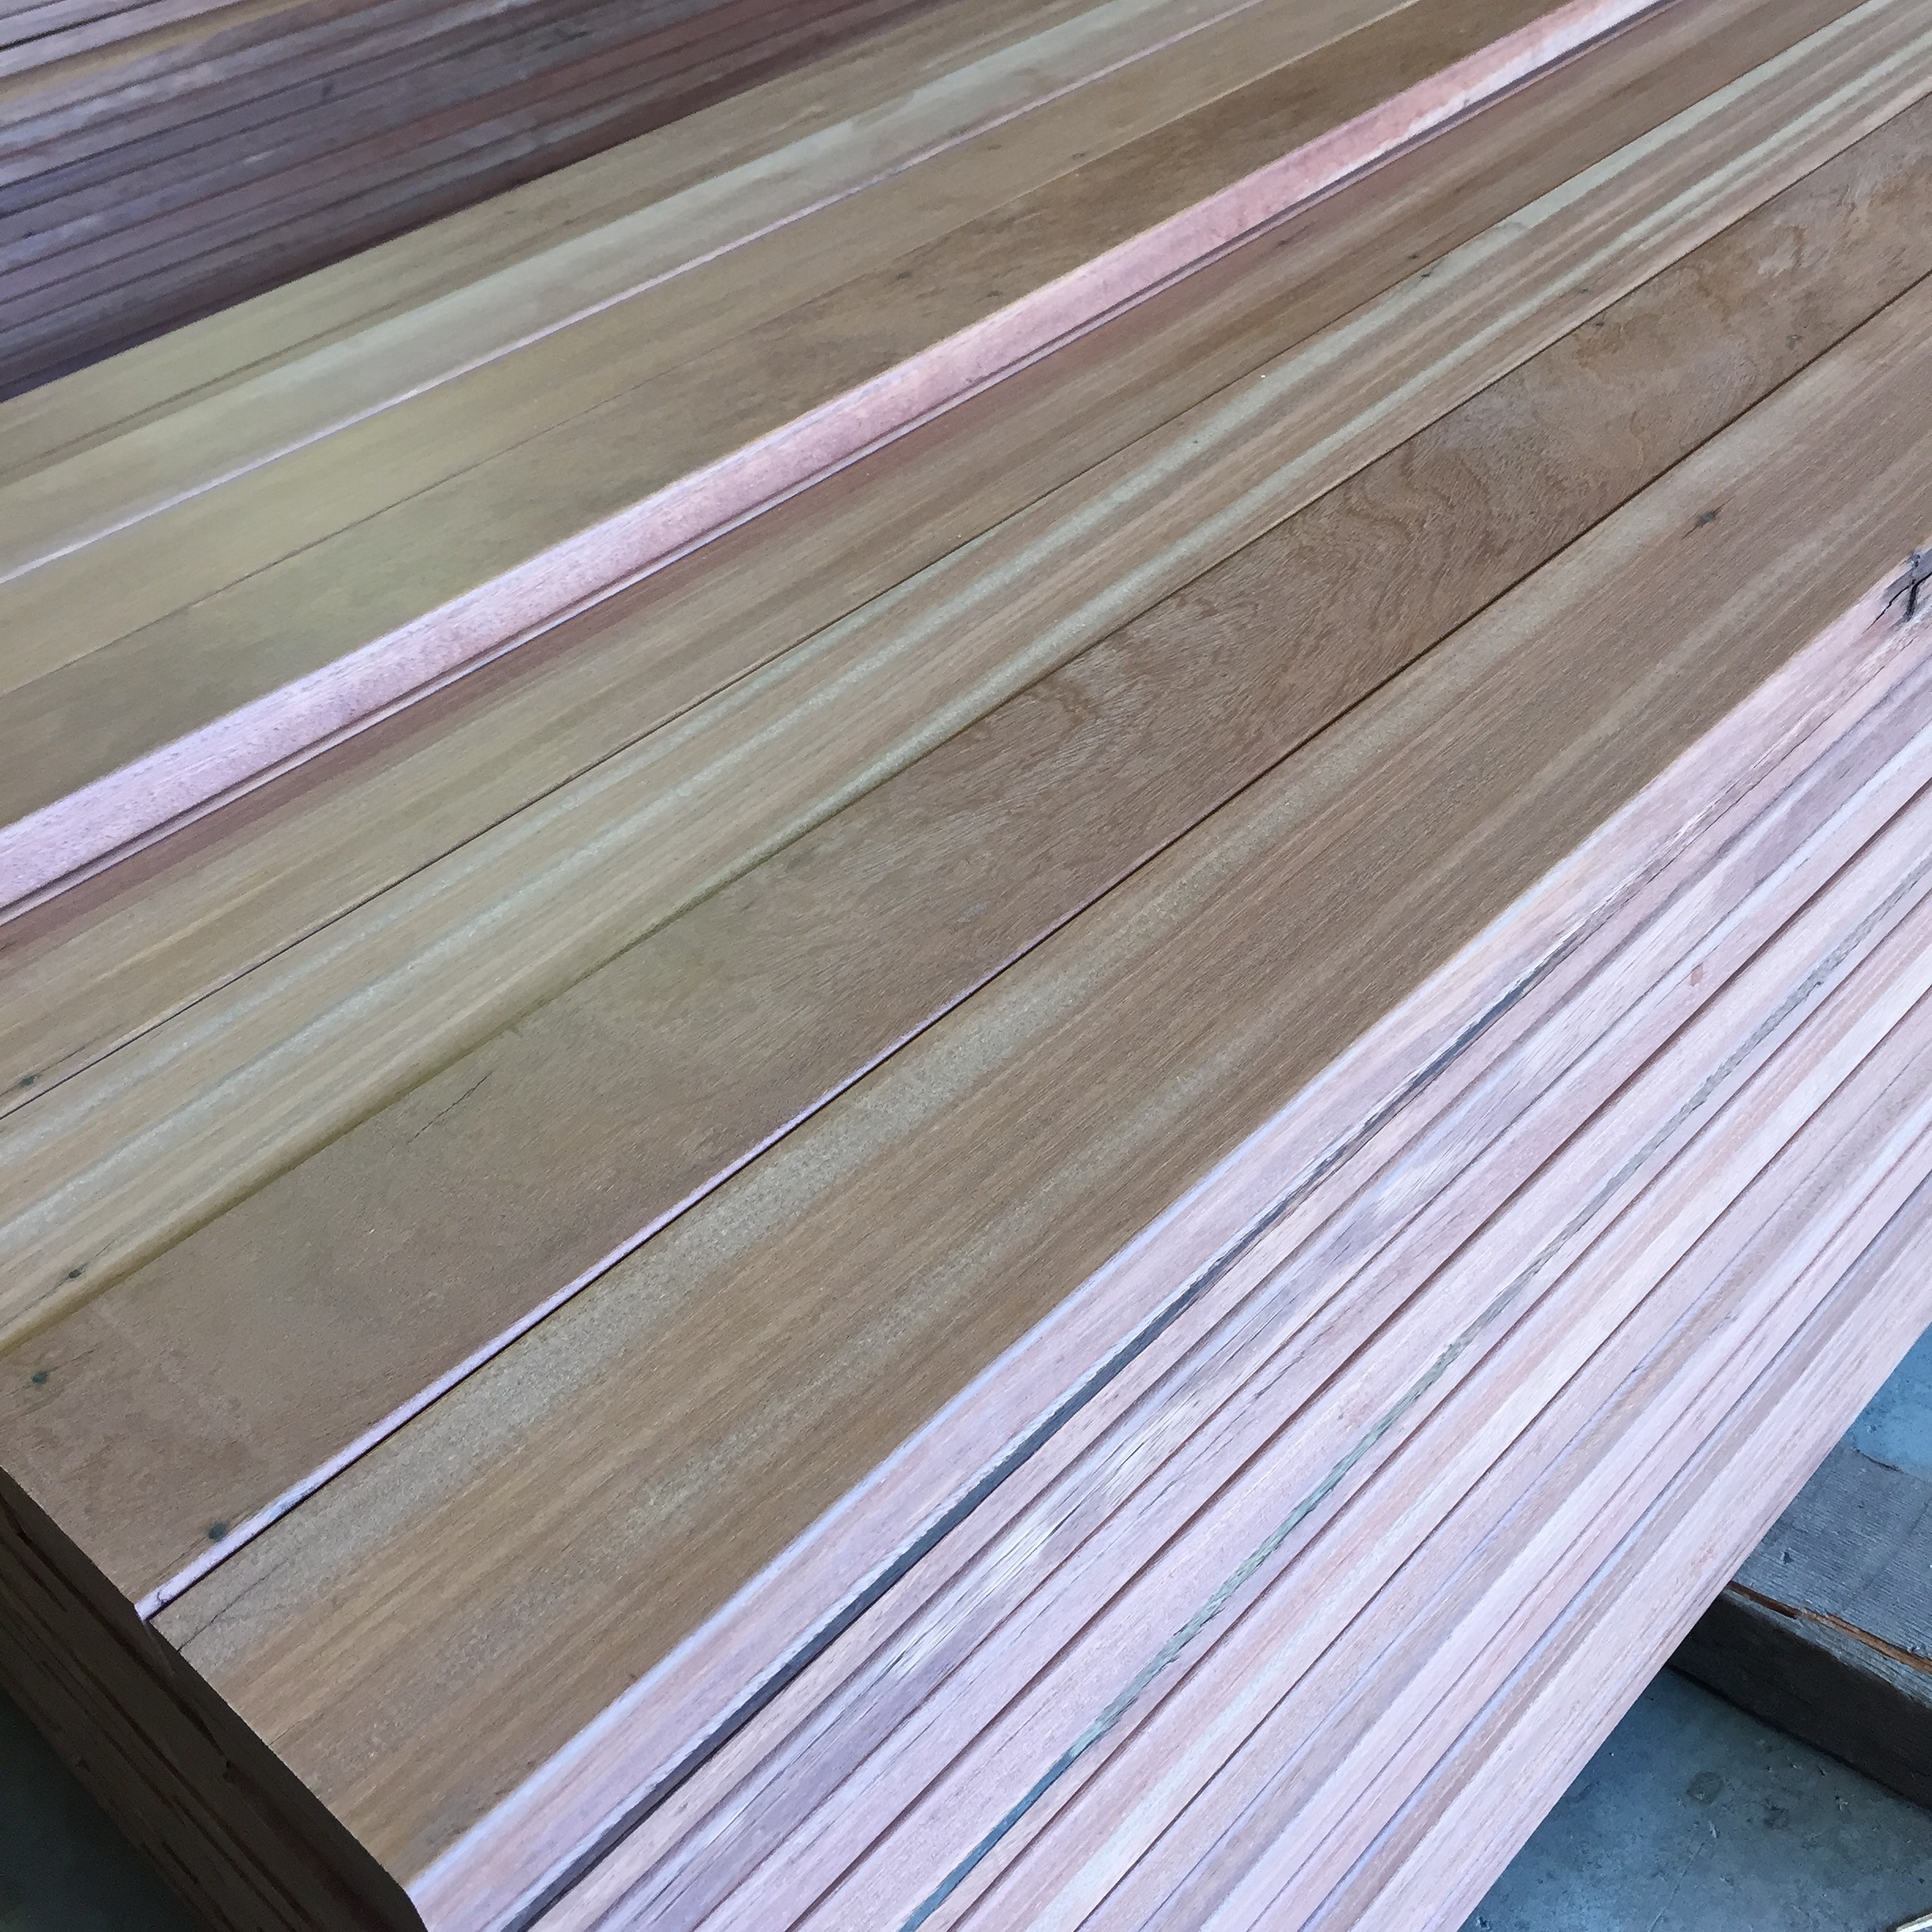 Dinizia Decking ready to ship